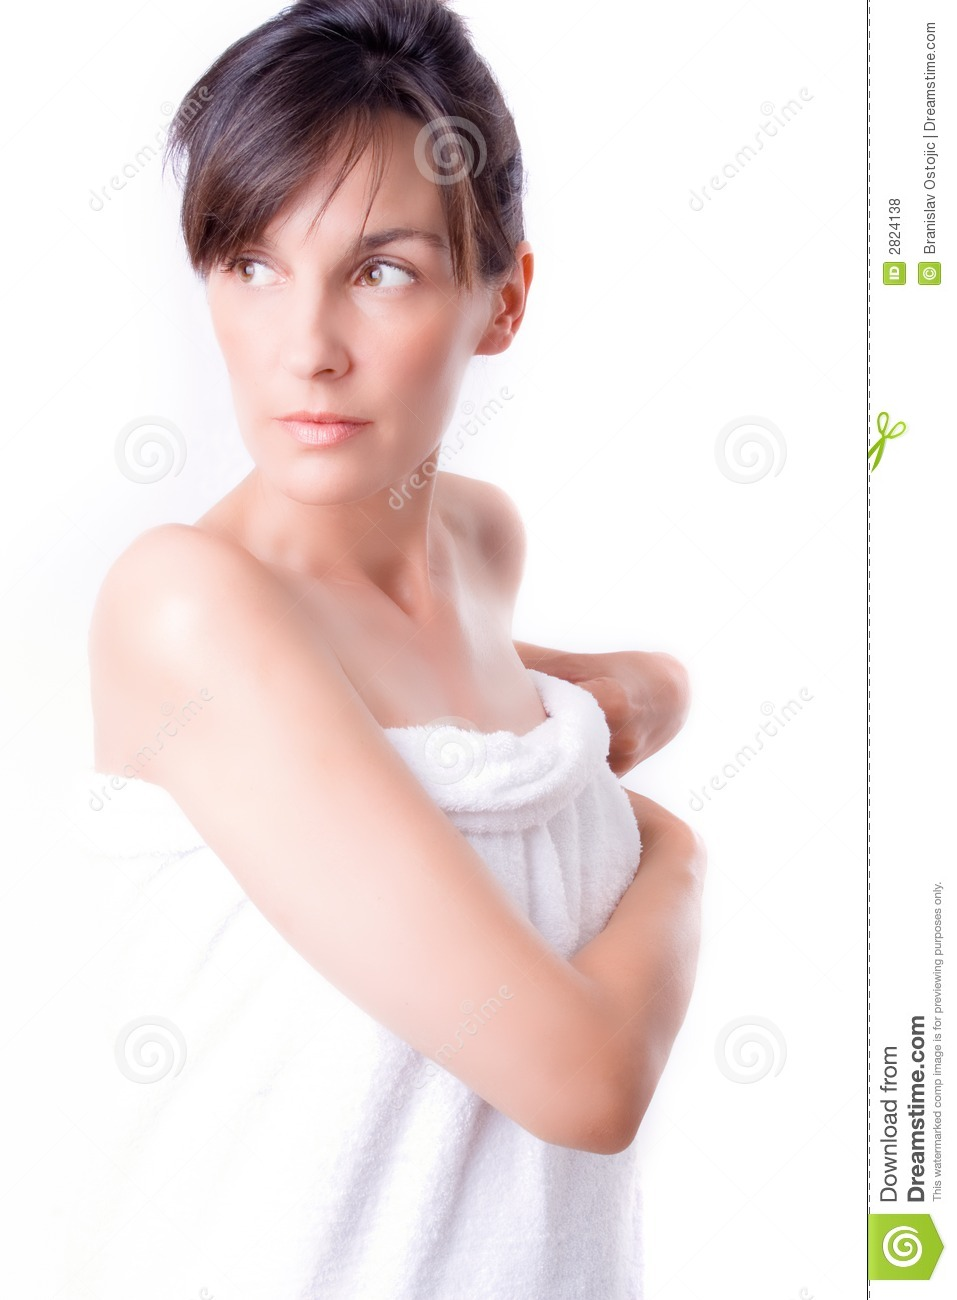 Woman wrapped in bath towel stock photo image 2824138 for Bathroom models photos